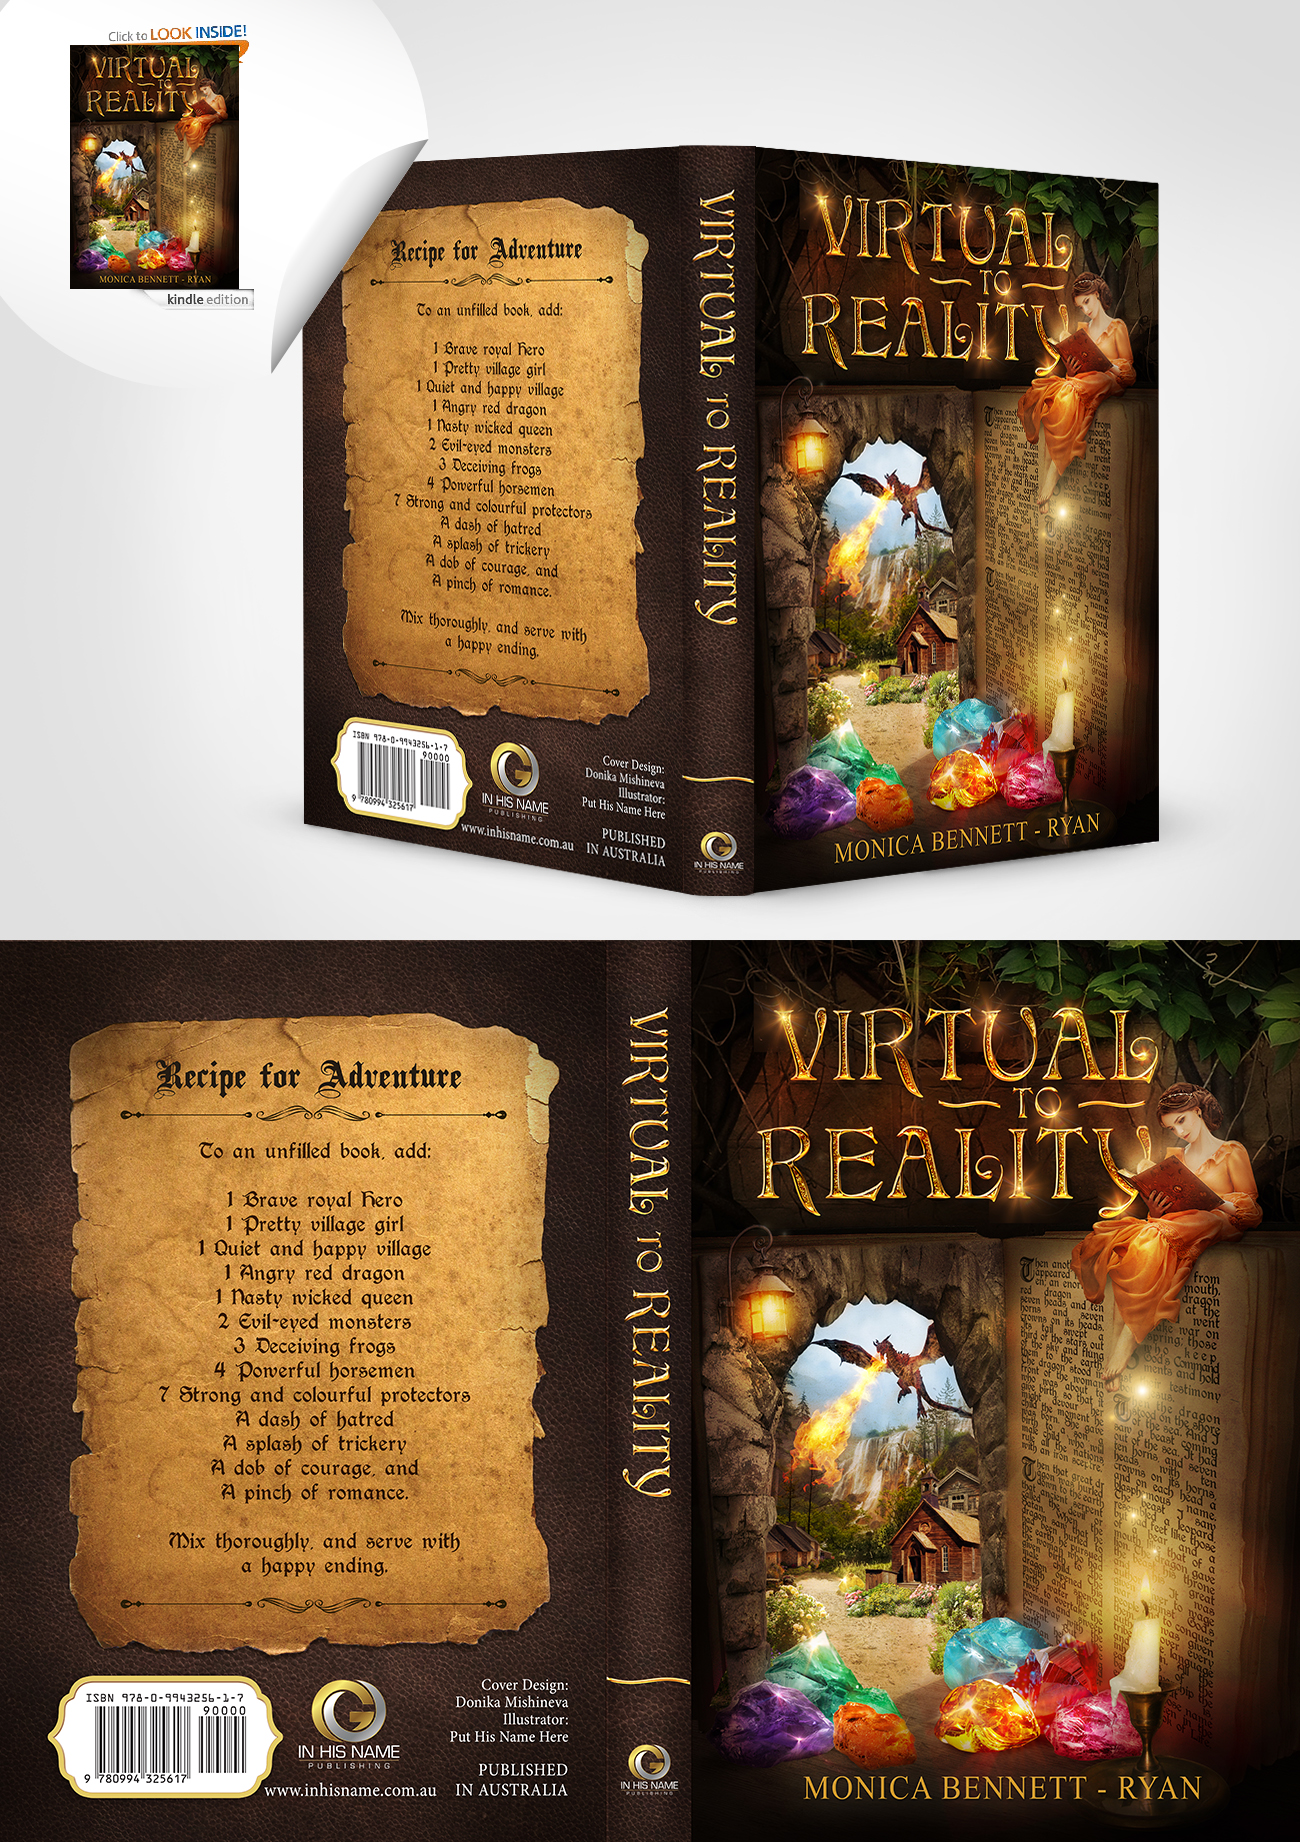 Book Cover Design: VIRTUAL To REALITY